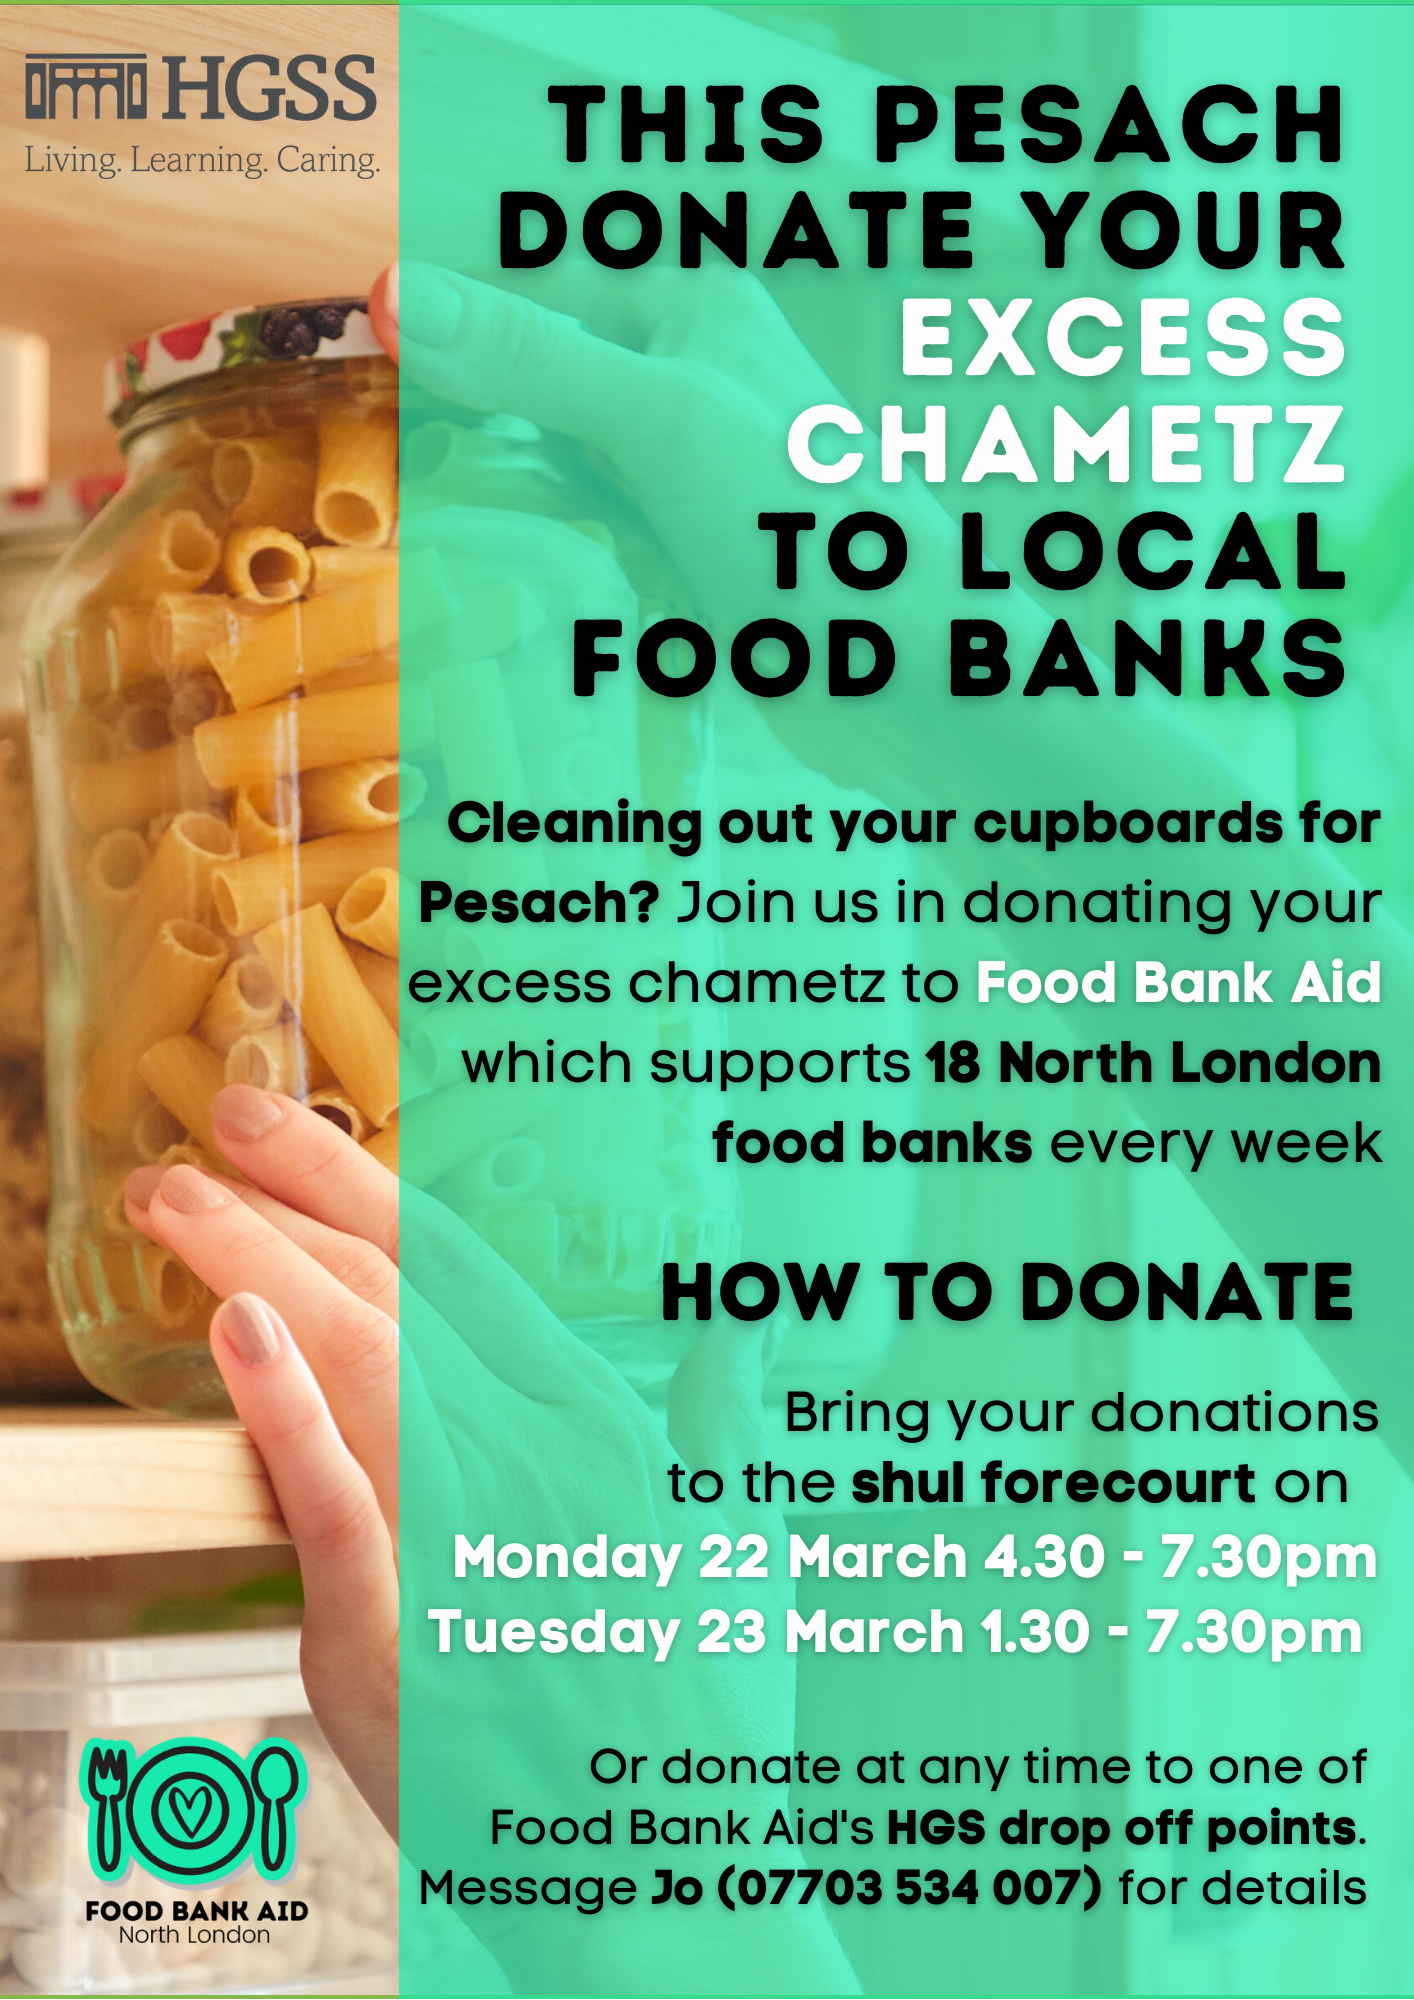 Food Bank Aid - Chametz @ HGSS